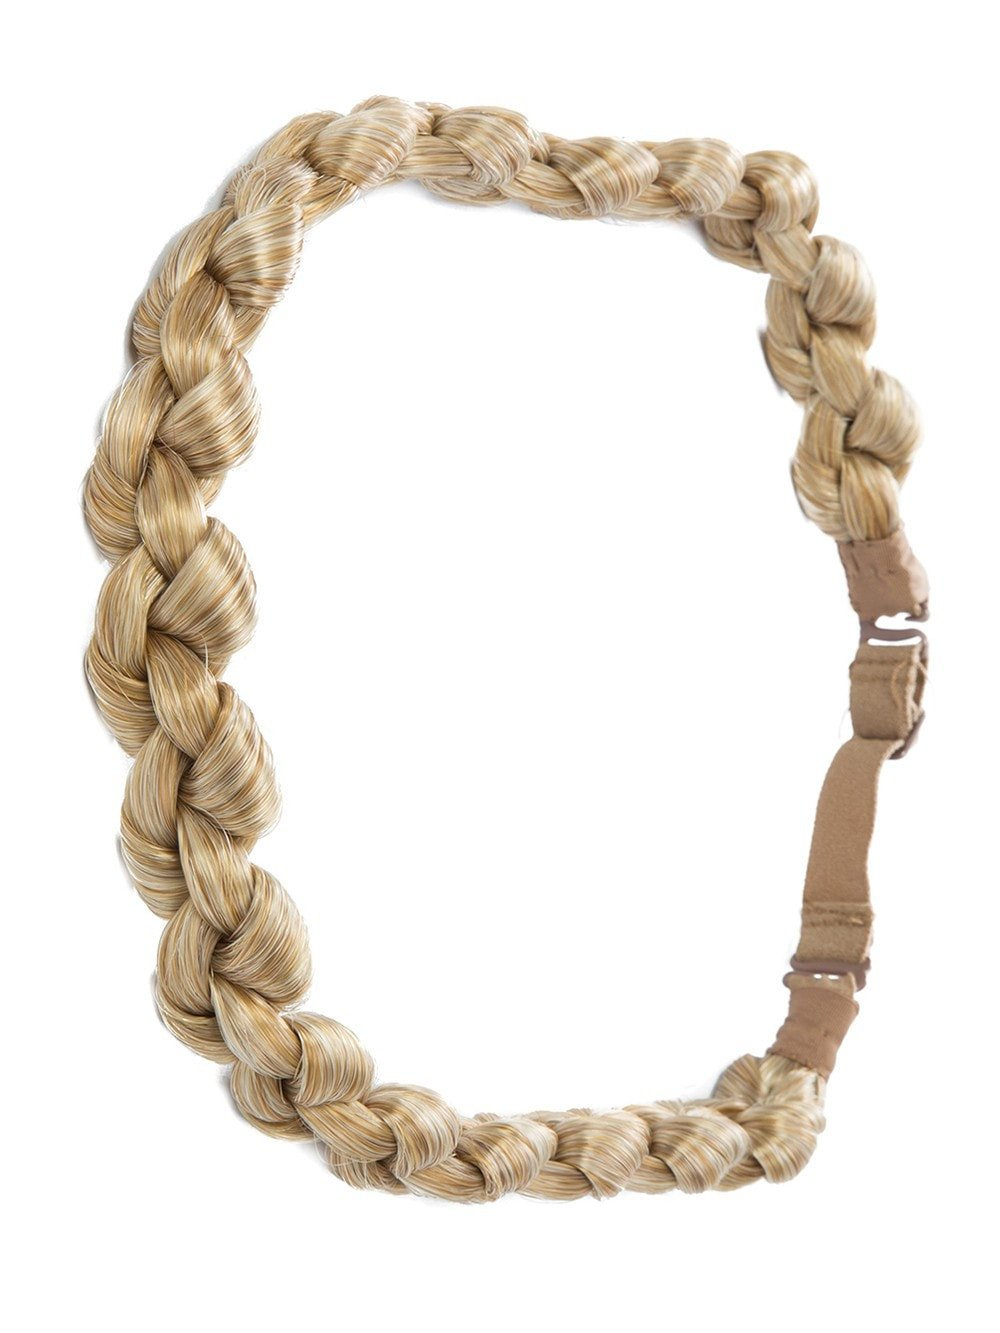 THICK BRAID HEADBAND | Product